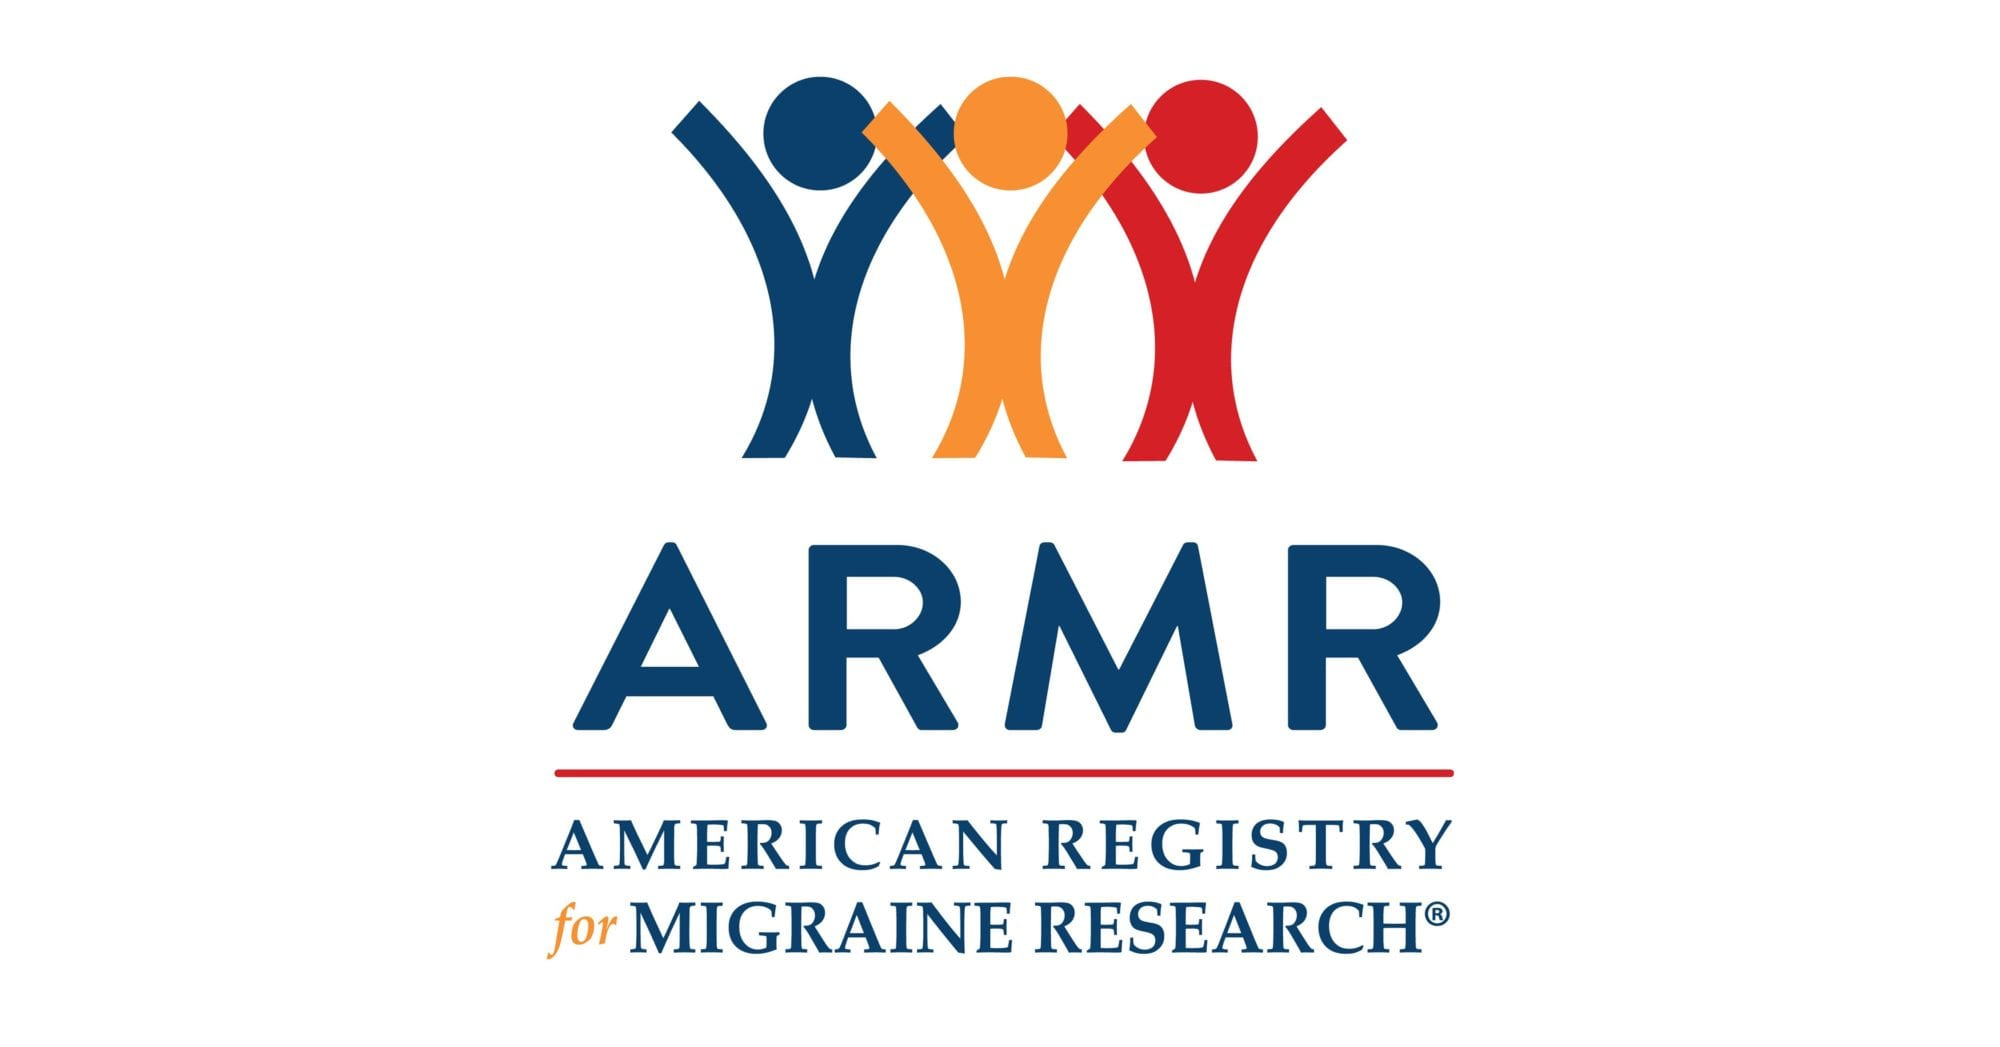 American Registry for Migraine Research logo